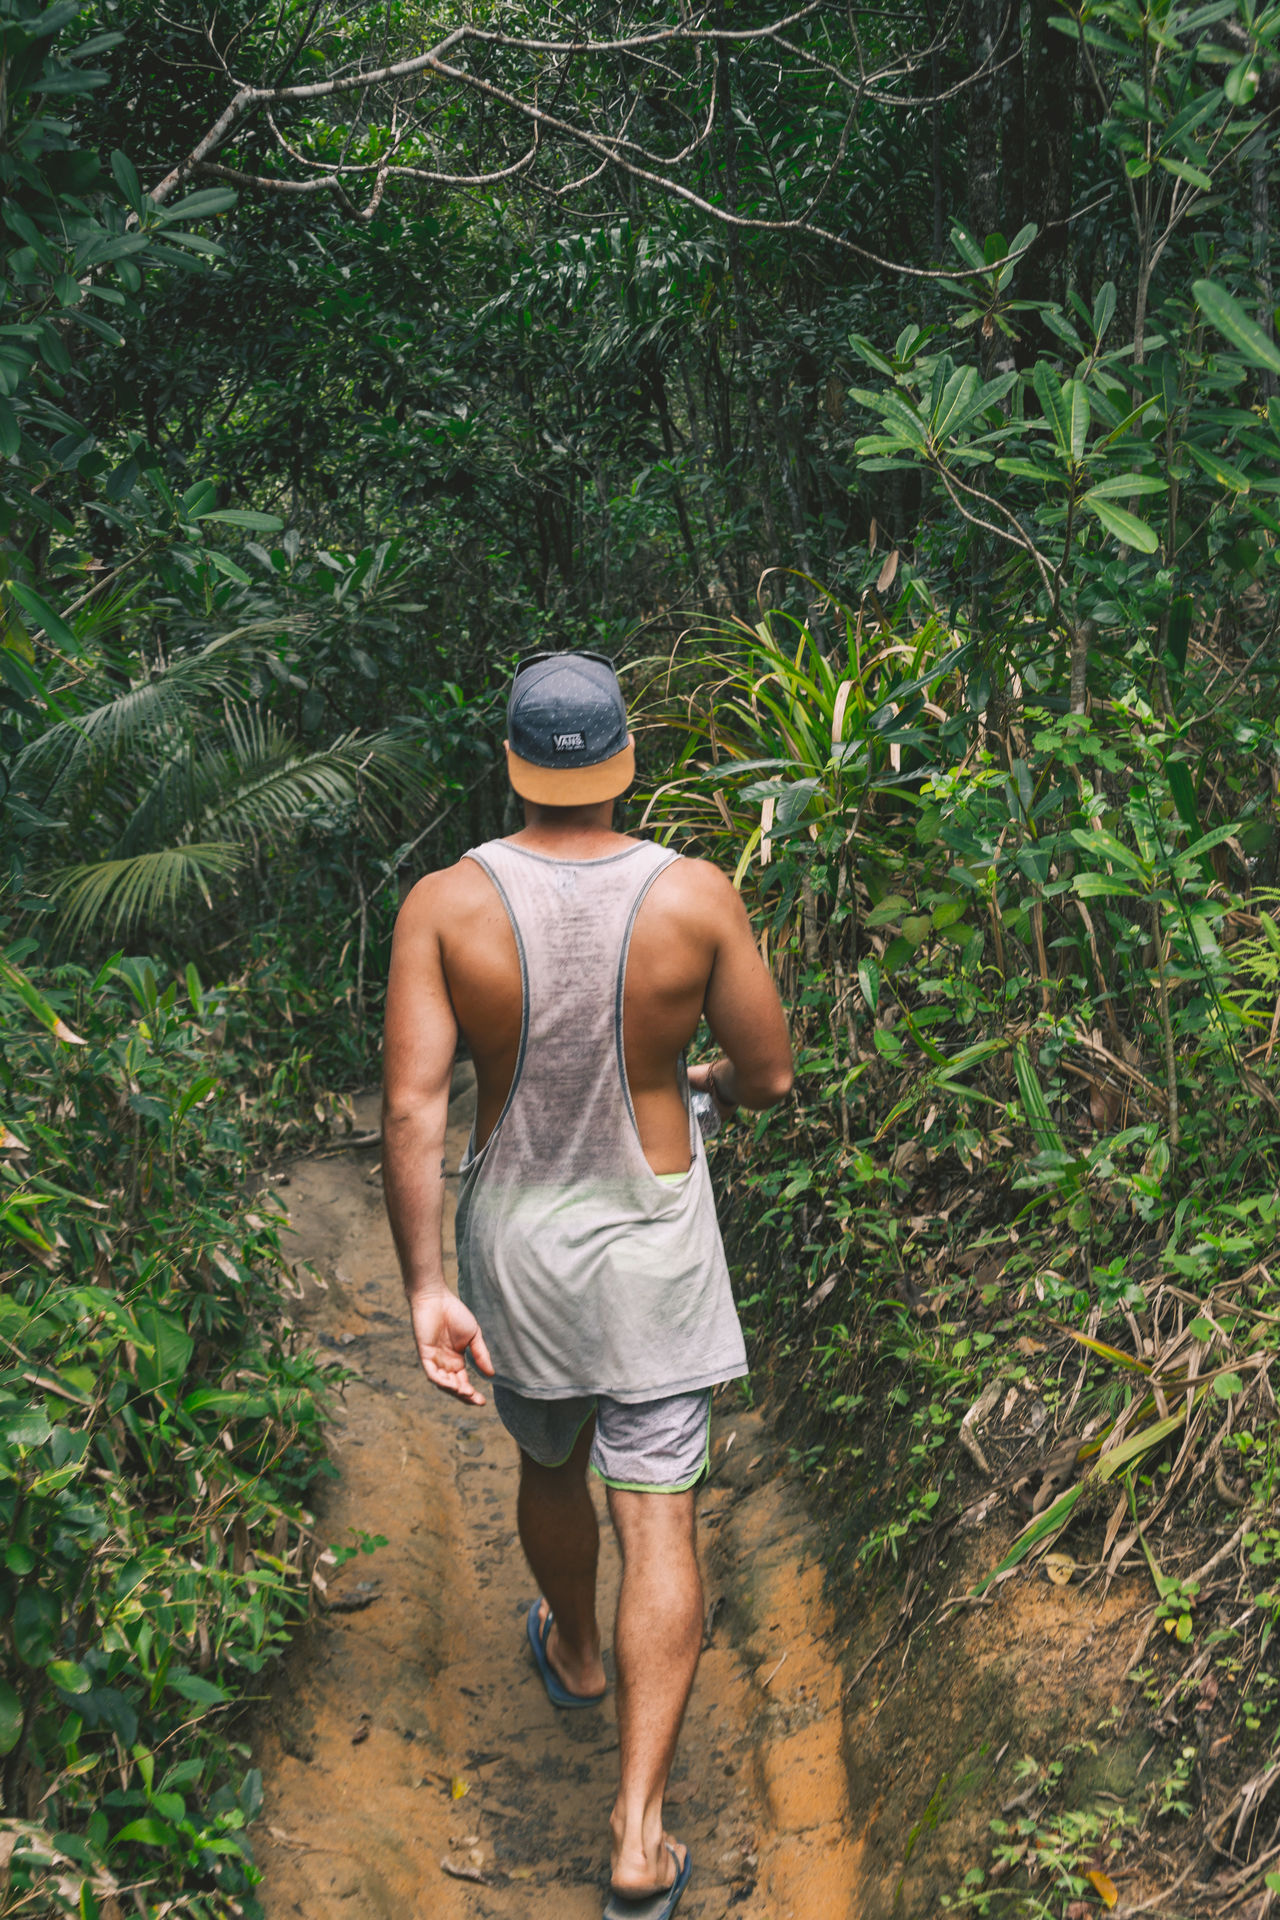 José heading into the jungle. Adult Adventure Body & Fitness Cap Day Green Into The Wild Into The Woods Jungle Jungle Trekking Leisure Activity Lifestyles Men Nature One Man Only One Person Outdoors People Plant Real People Rear View Standing Style The Portraitist - 2017 EyeEm Awards Tree Live For The Story